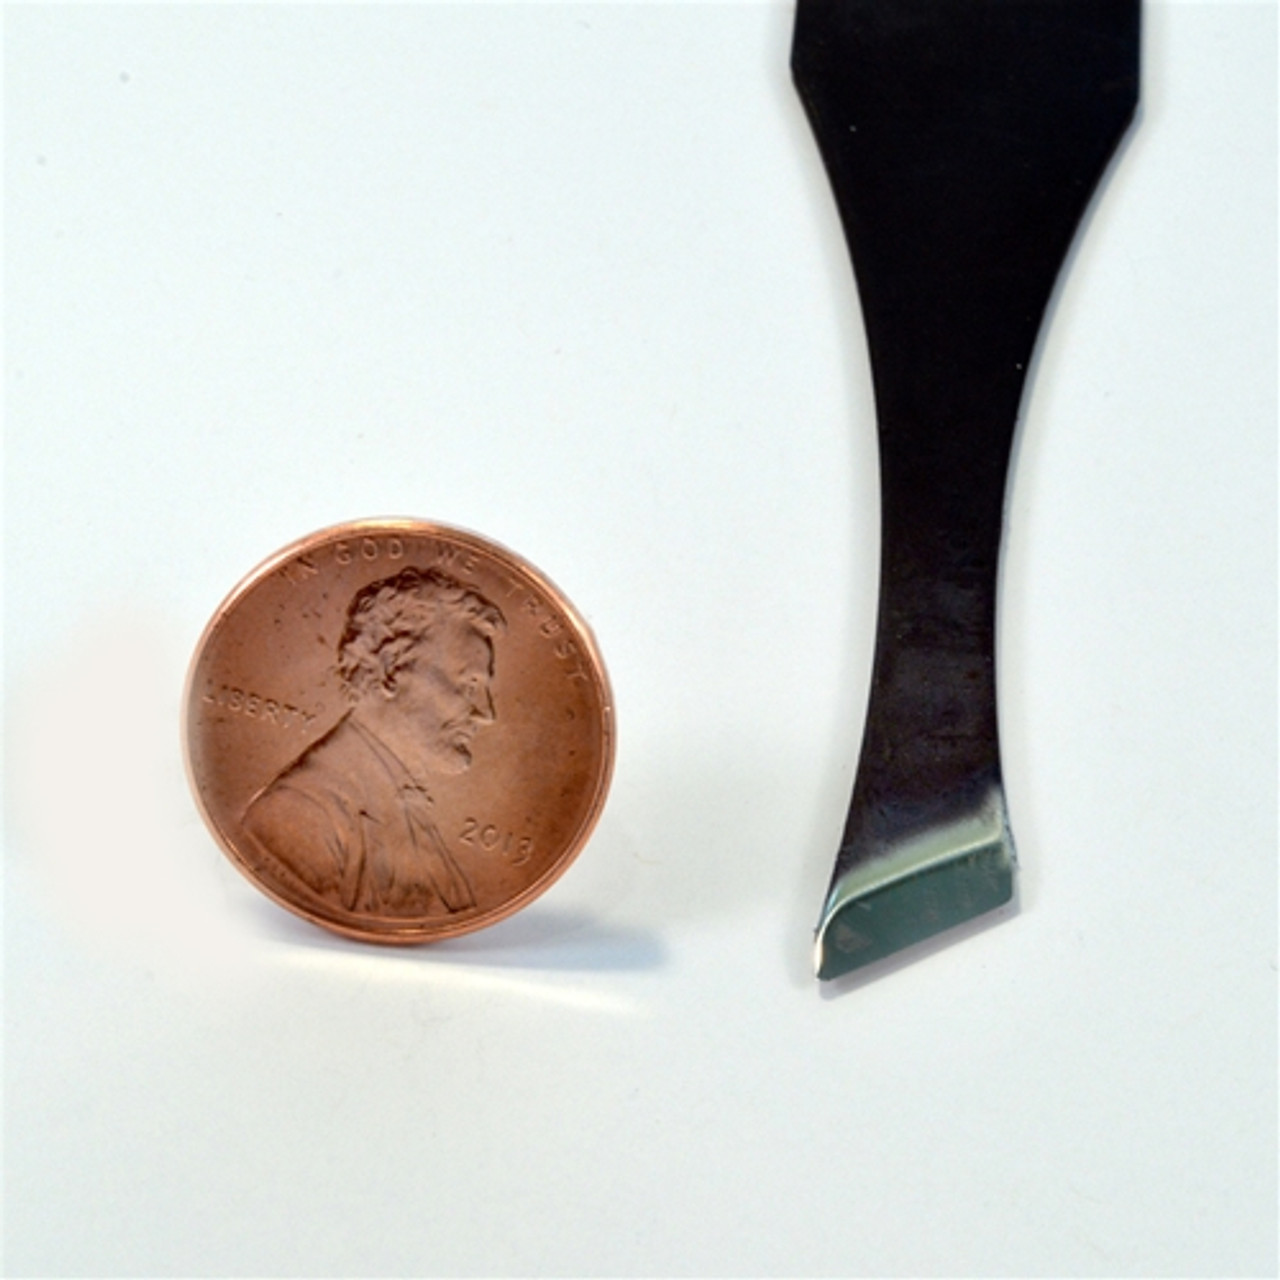 """Flexcut FR308 Palm Carving #2 x 5/16"""" Skew shown to view the actual size of the blade compared to a penny."""